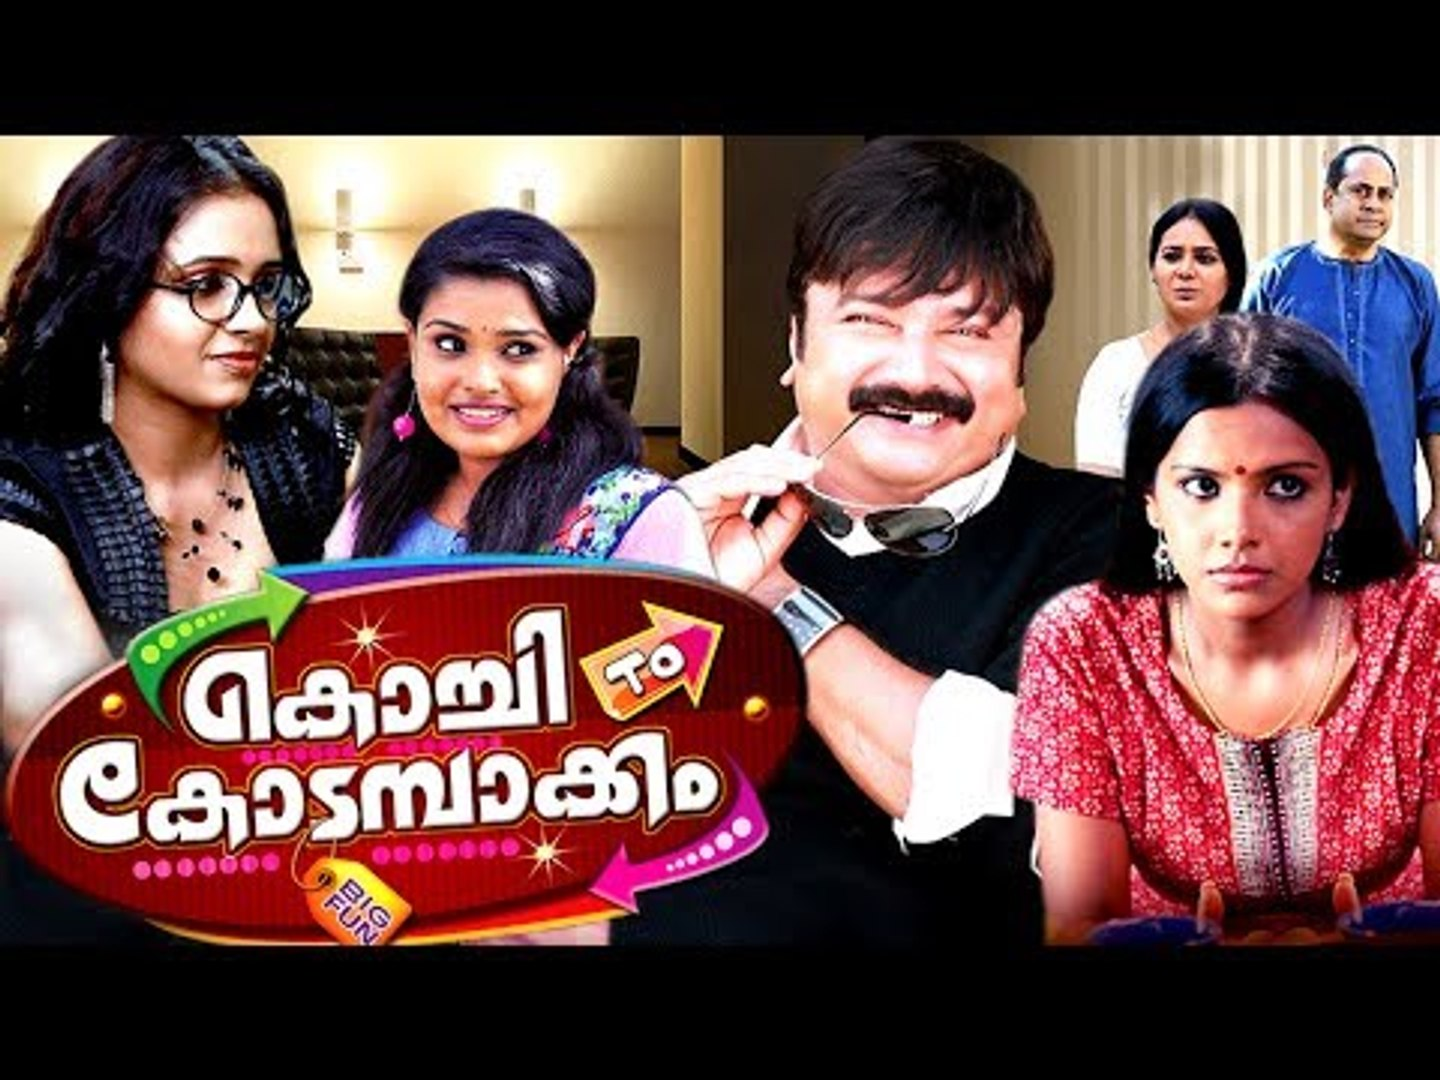 Malayalam Full Movie 2017 New Releases # New Malayalam Full Movie 2017 # Jayaram New Movie 2017